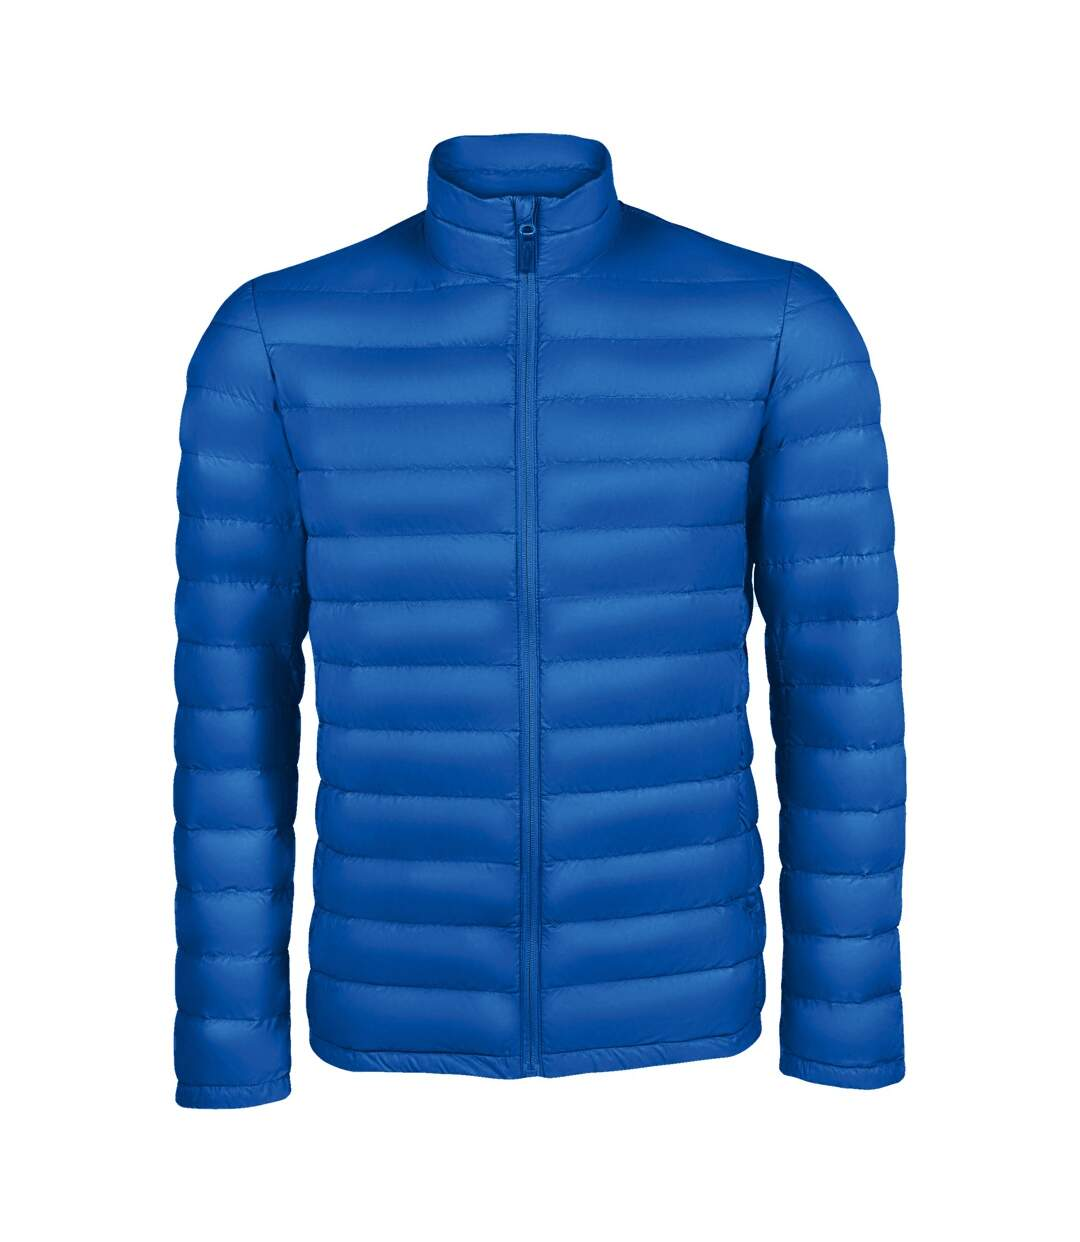 SOLS Mens Wilson Lightweight Padded Jacket (Royal Blue) - UTPC3316